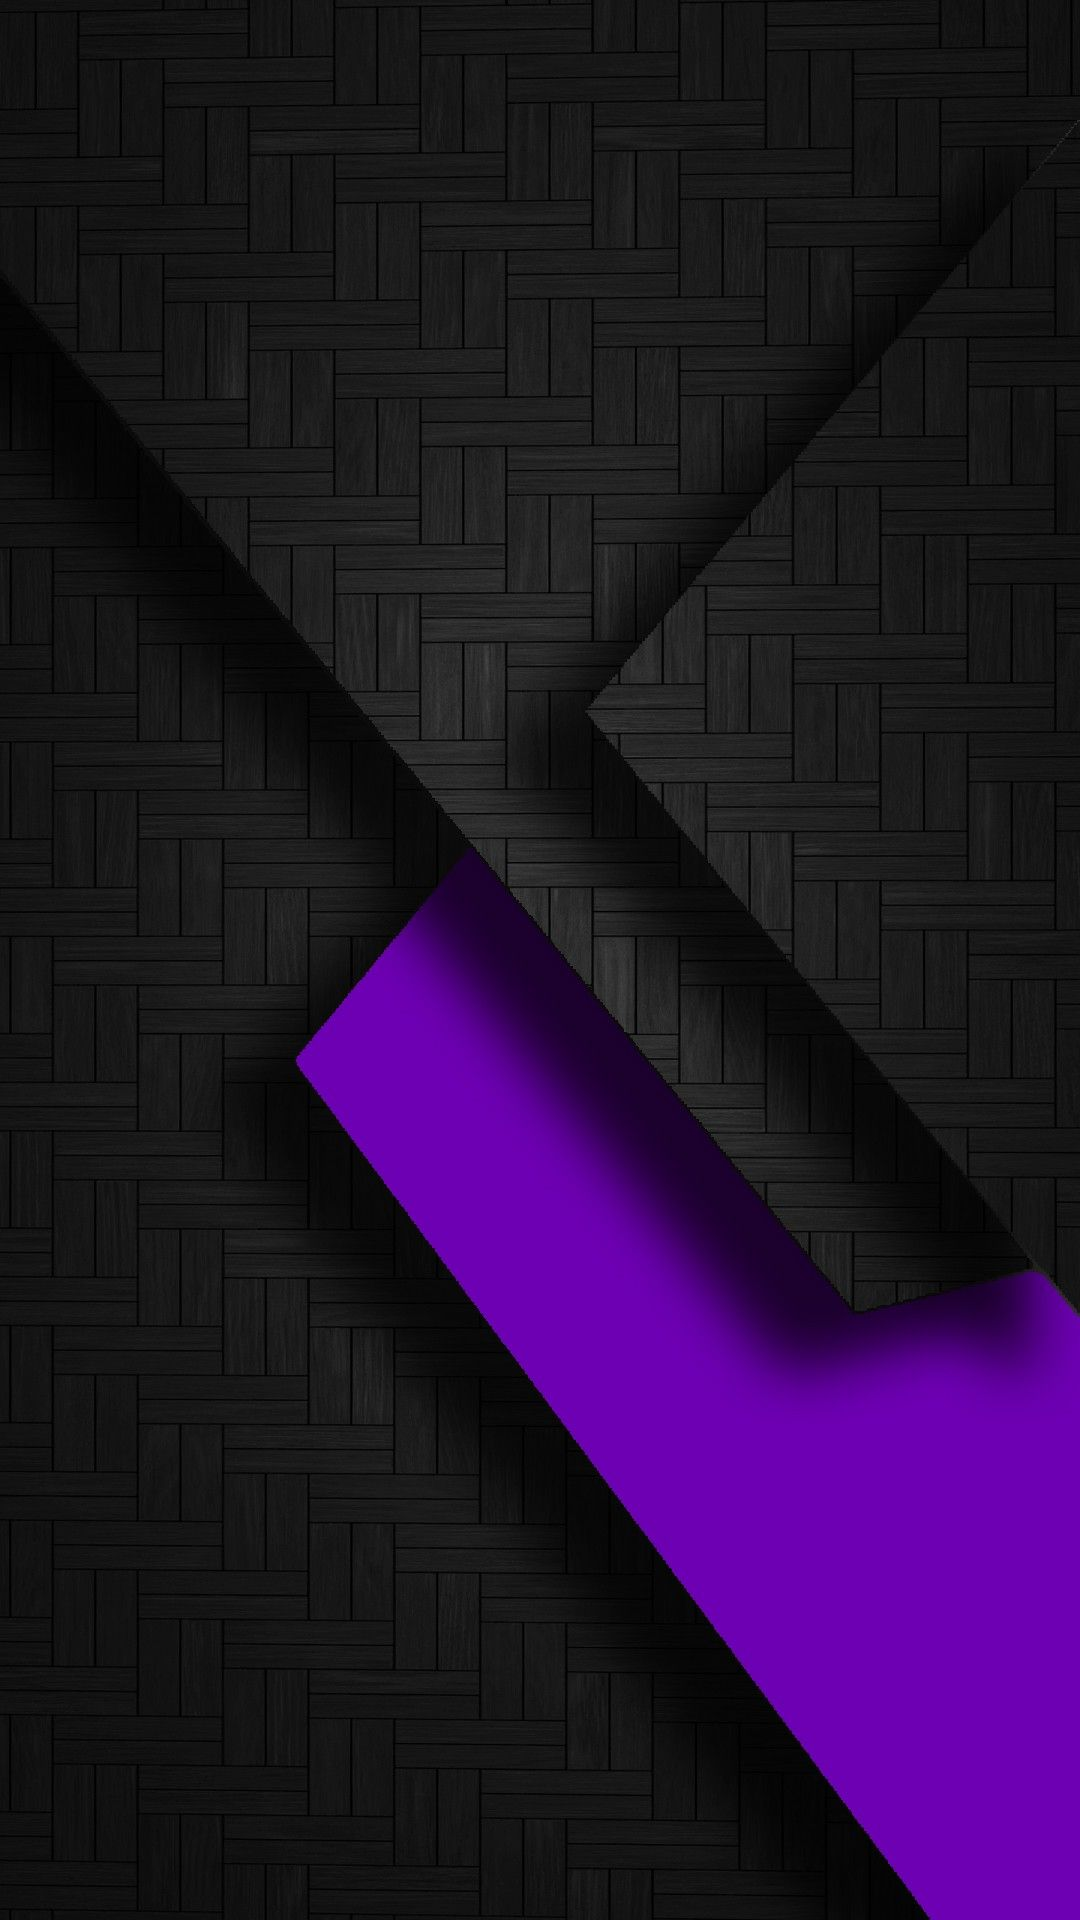 Pin on wallpaper phone Purple geometric wallpaper